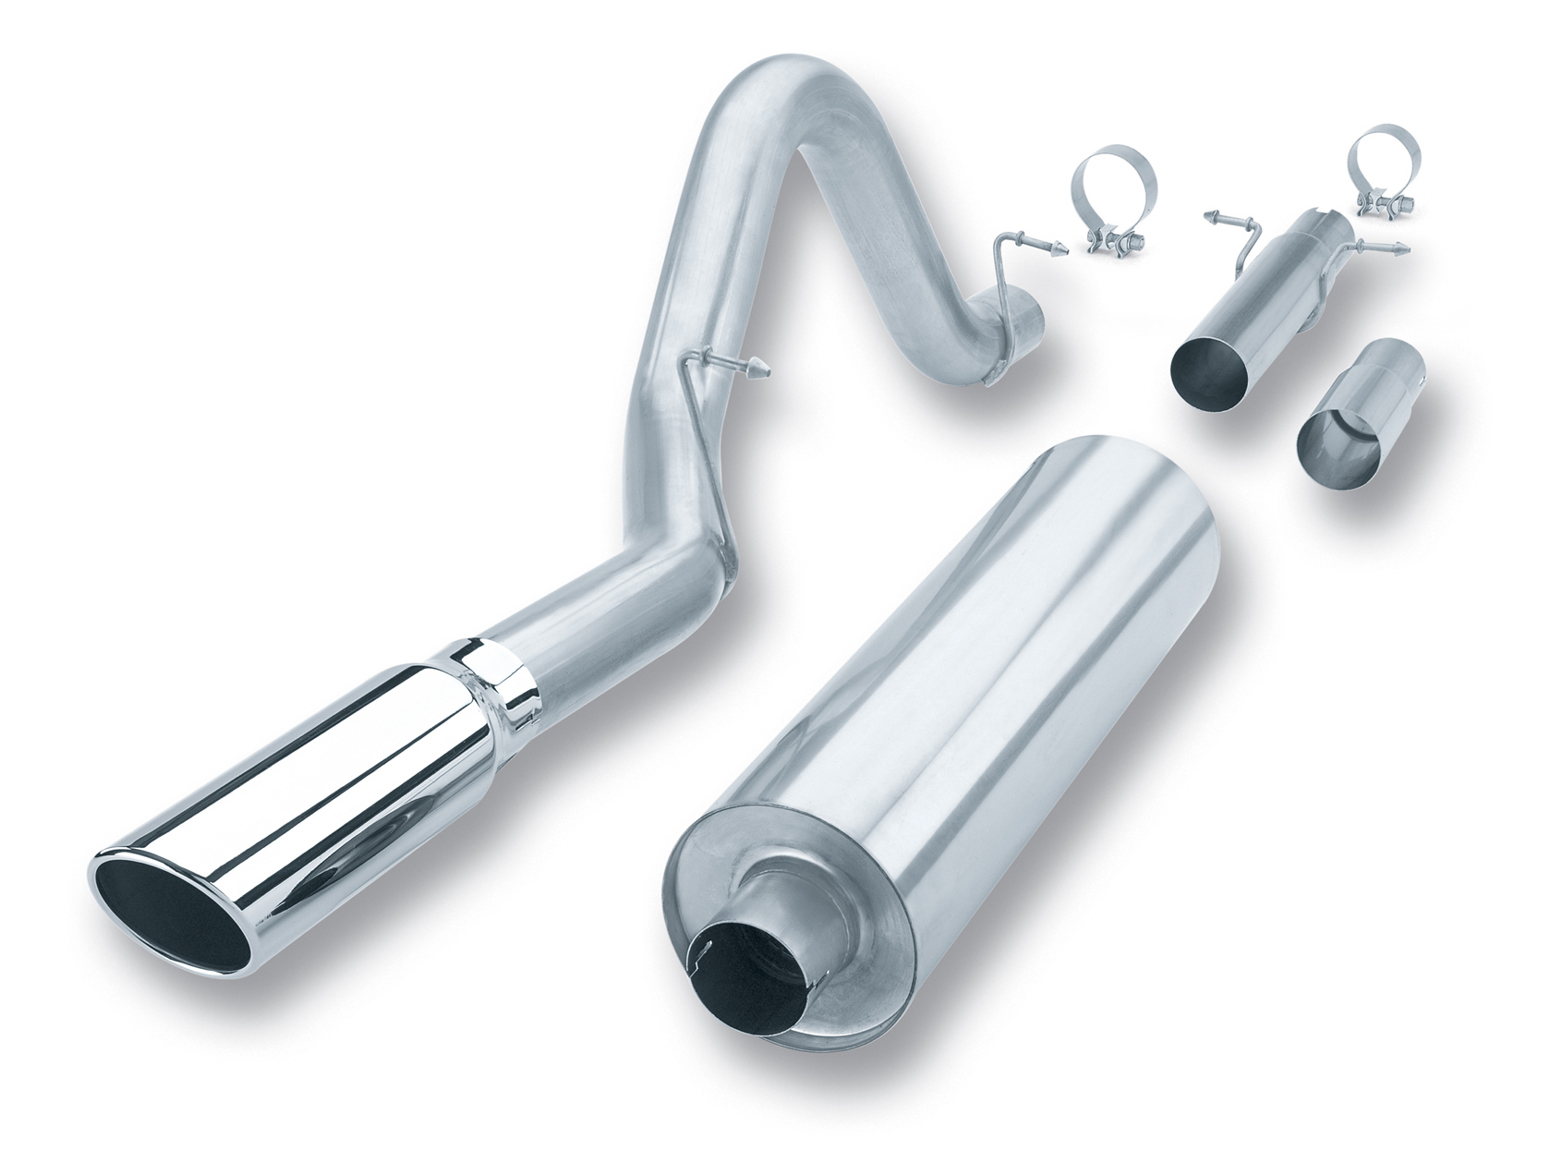 "Dodge Durango 4.7l/5.2l/5.9l V8 1998-2003 Borla 3"" Cat-Back Exhaust System - Single Round Rolled Angle-Cut  Long X Single Round Rolled Angle-Cut Intercooled Tips"" Dia"